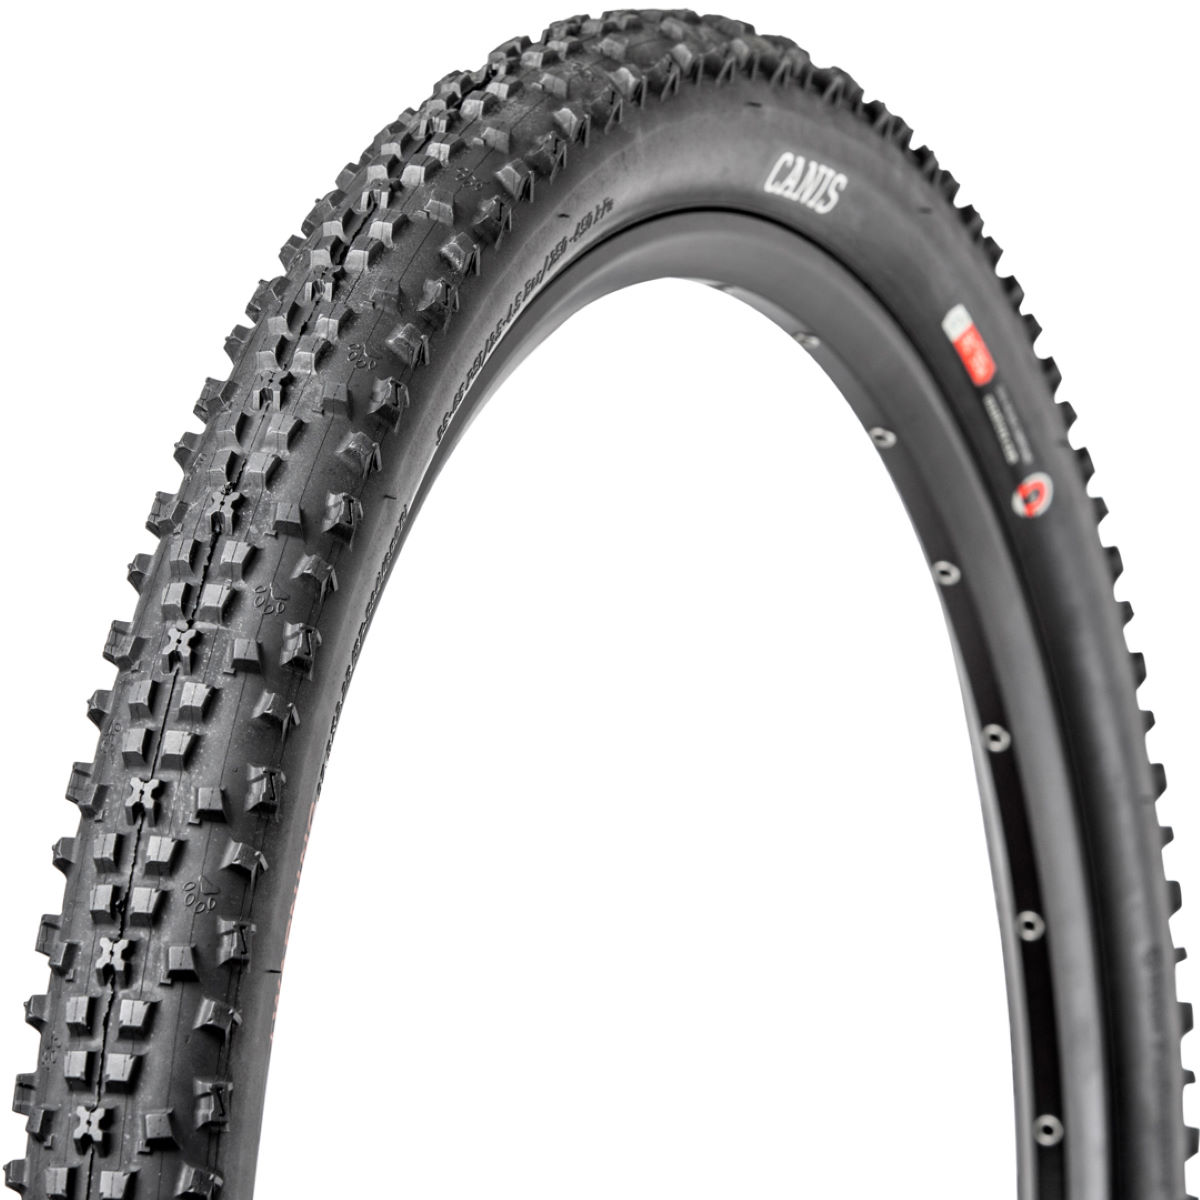 Onza Canis 120TPi MTB Tyre - Cubiertas